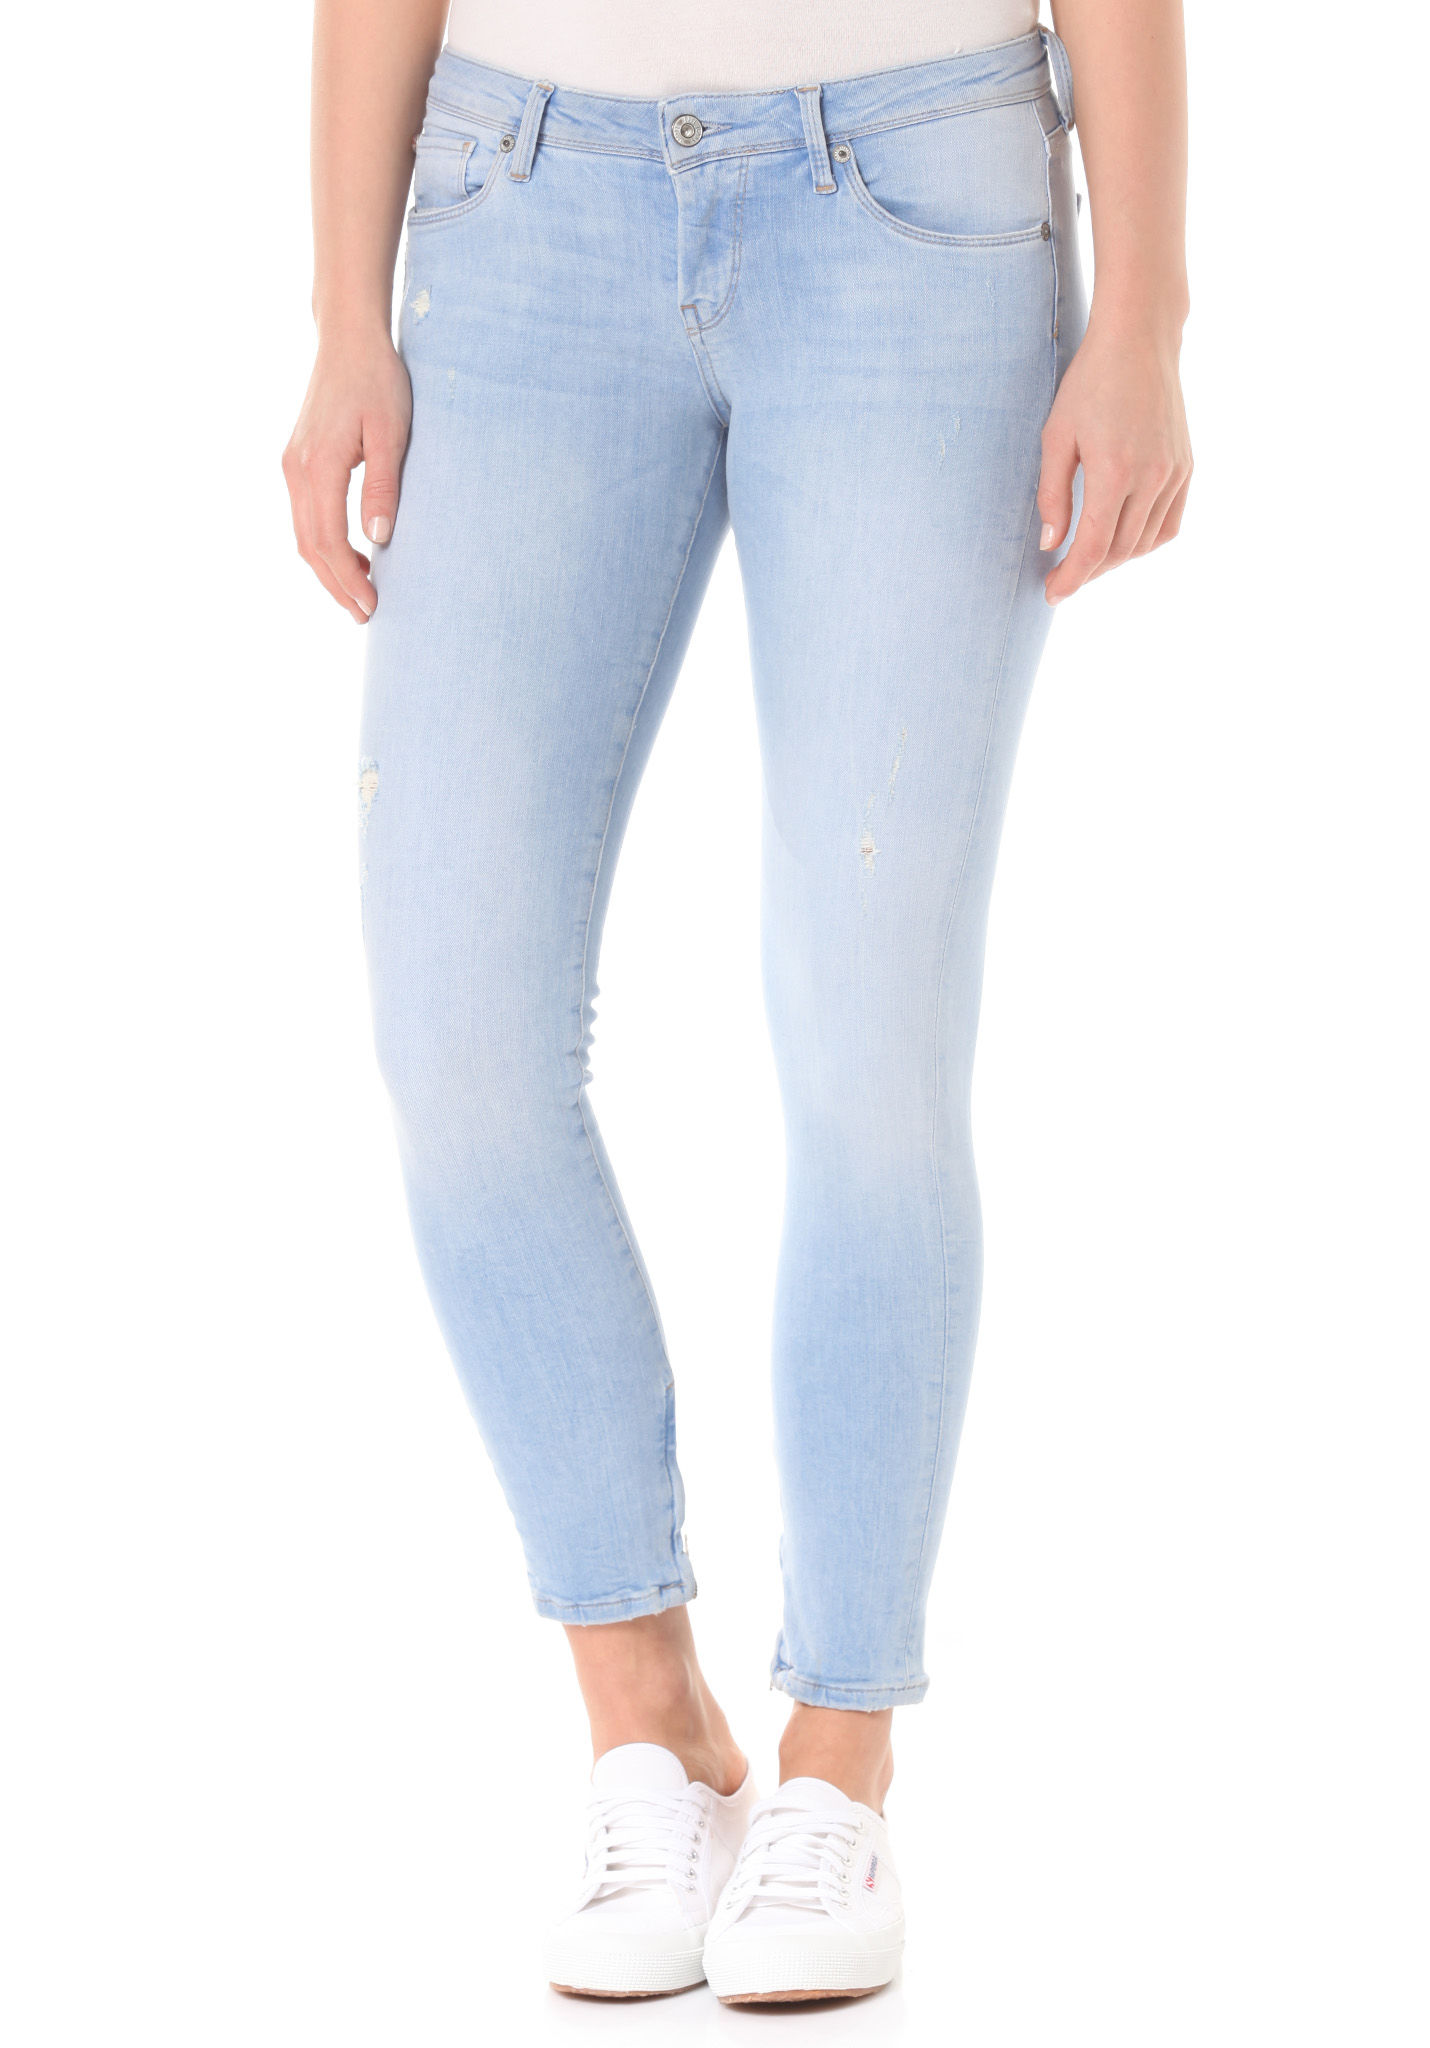 PEPE JEANS Cher - Denim Jeans for Women - Blue - Planet Sports